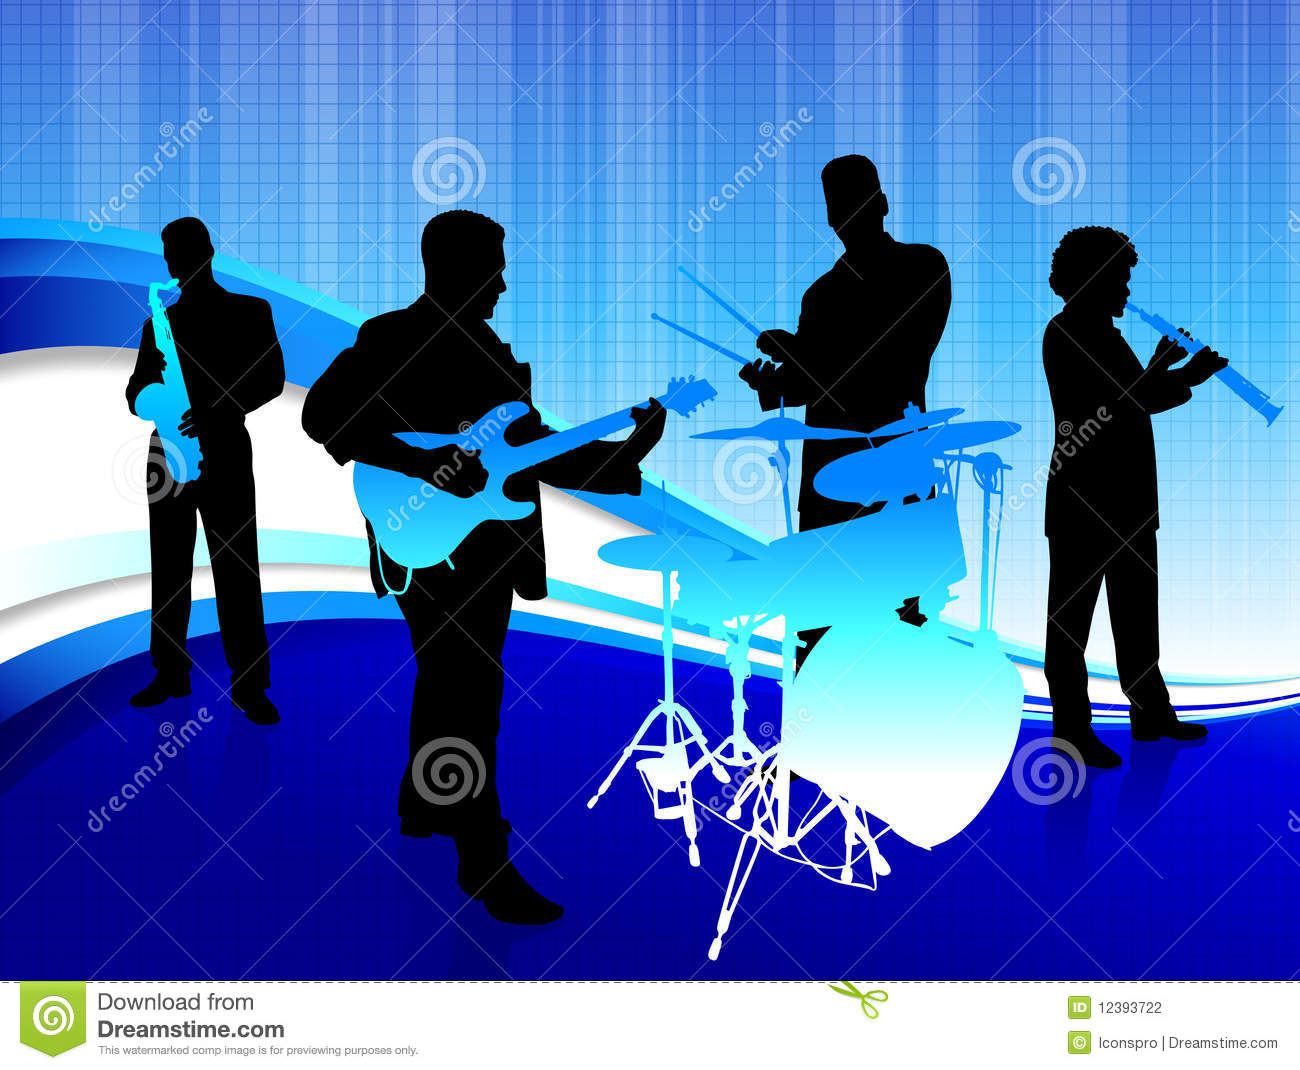 band musical background abstract clip vector illustration ideal concept preview yes fotosearch flute